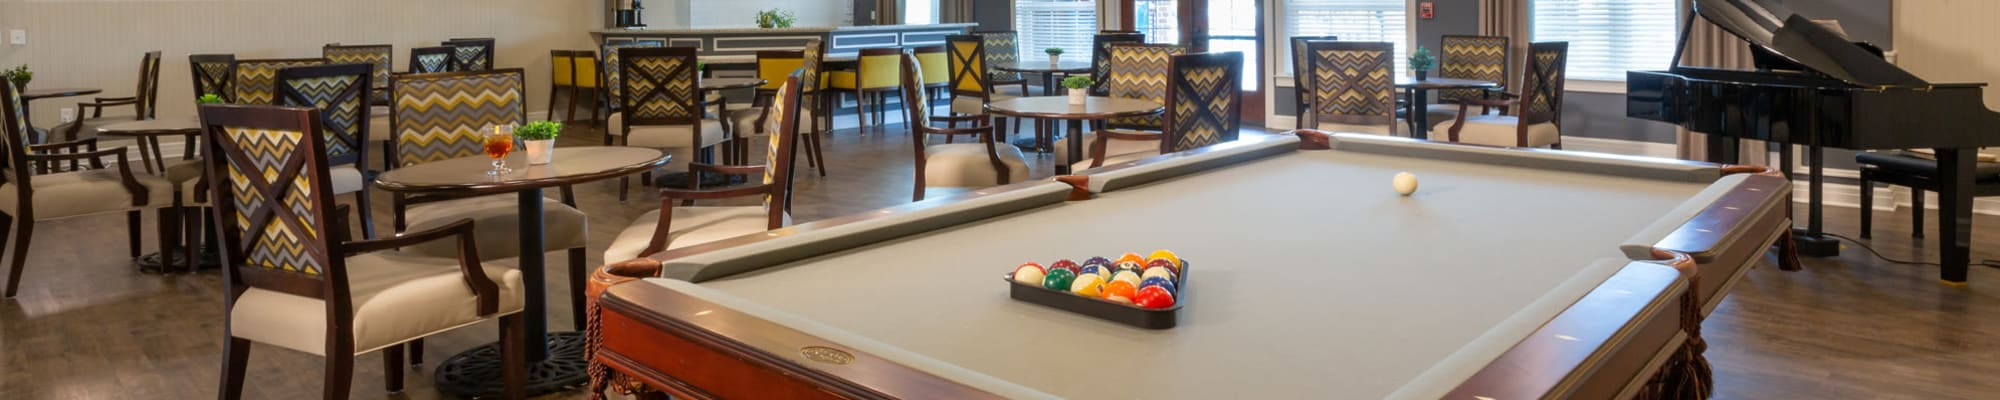 Activities & Events at Harmony at Five Forks in Simpsonville, South Carolina